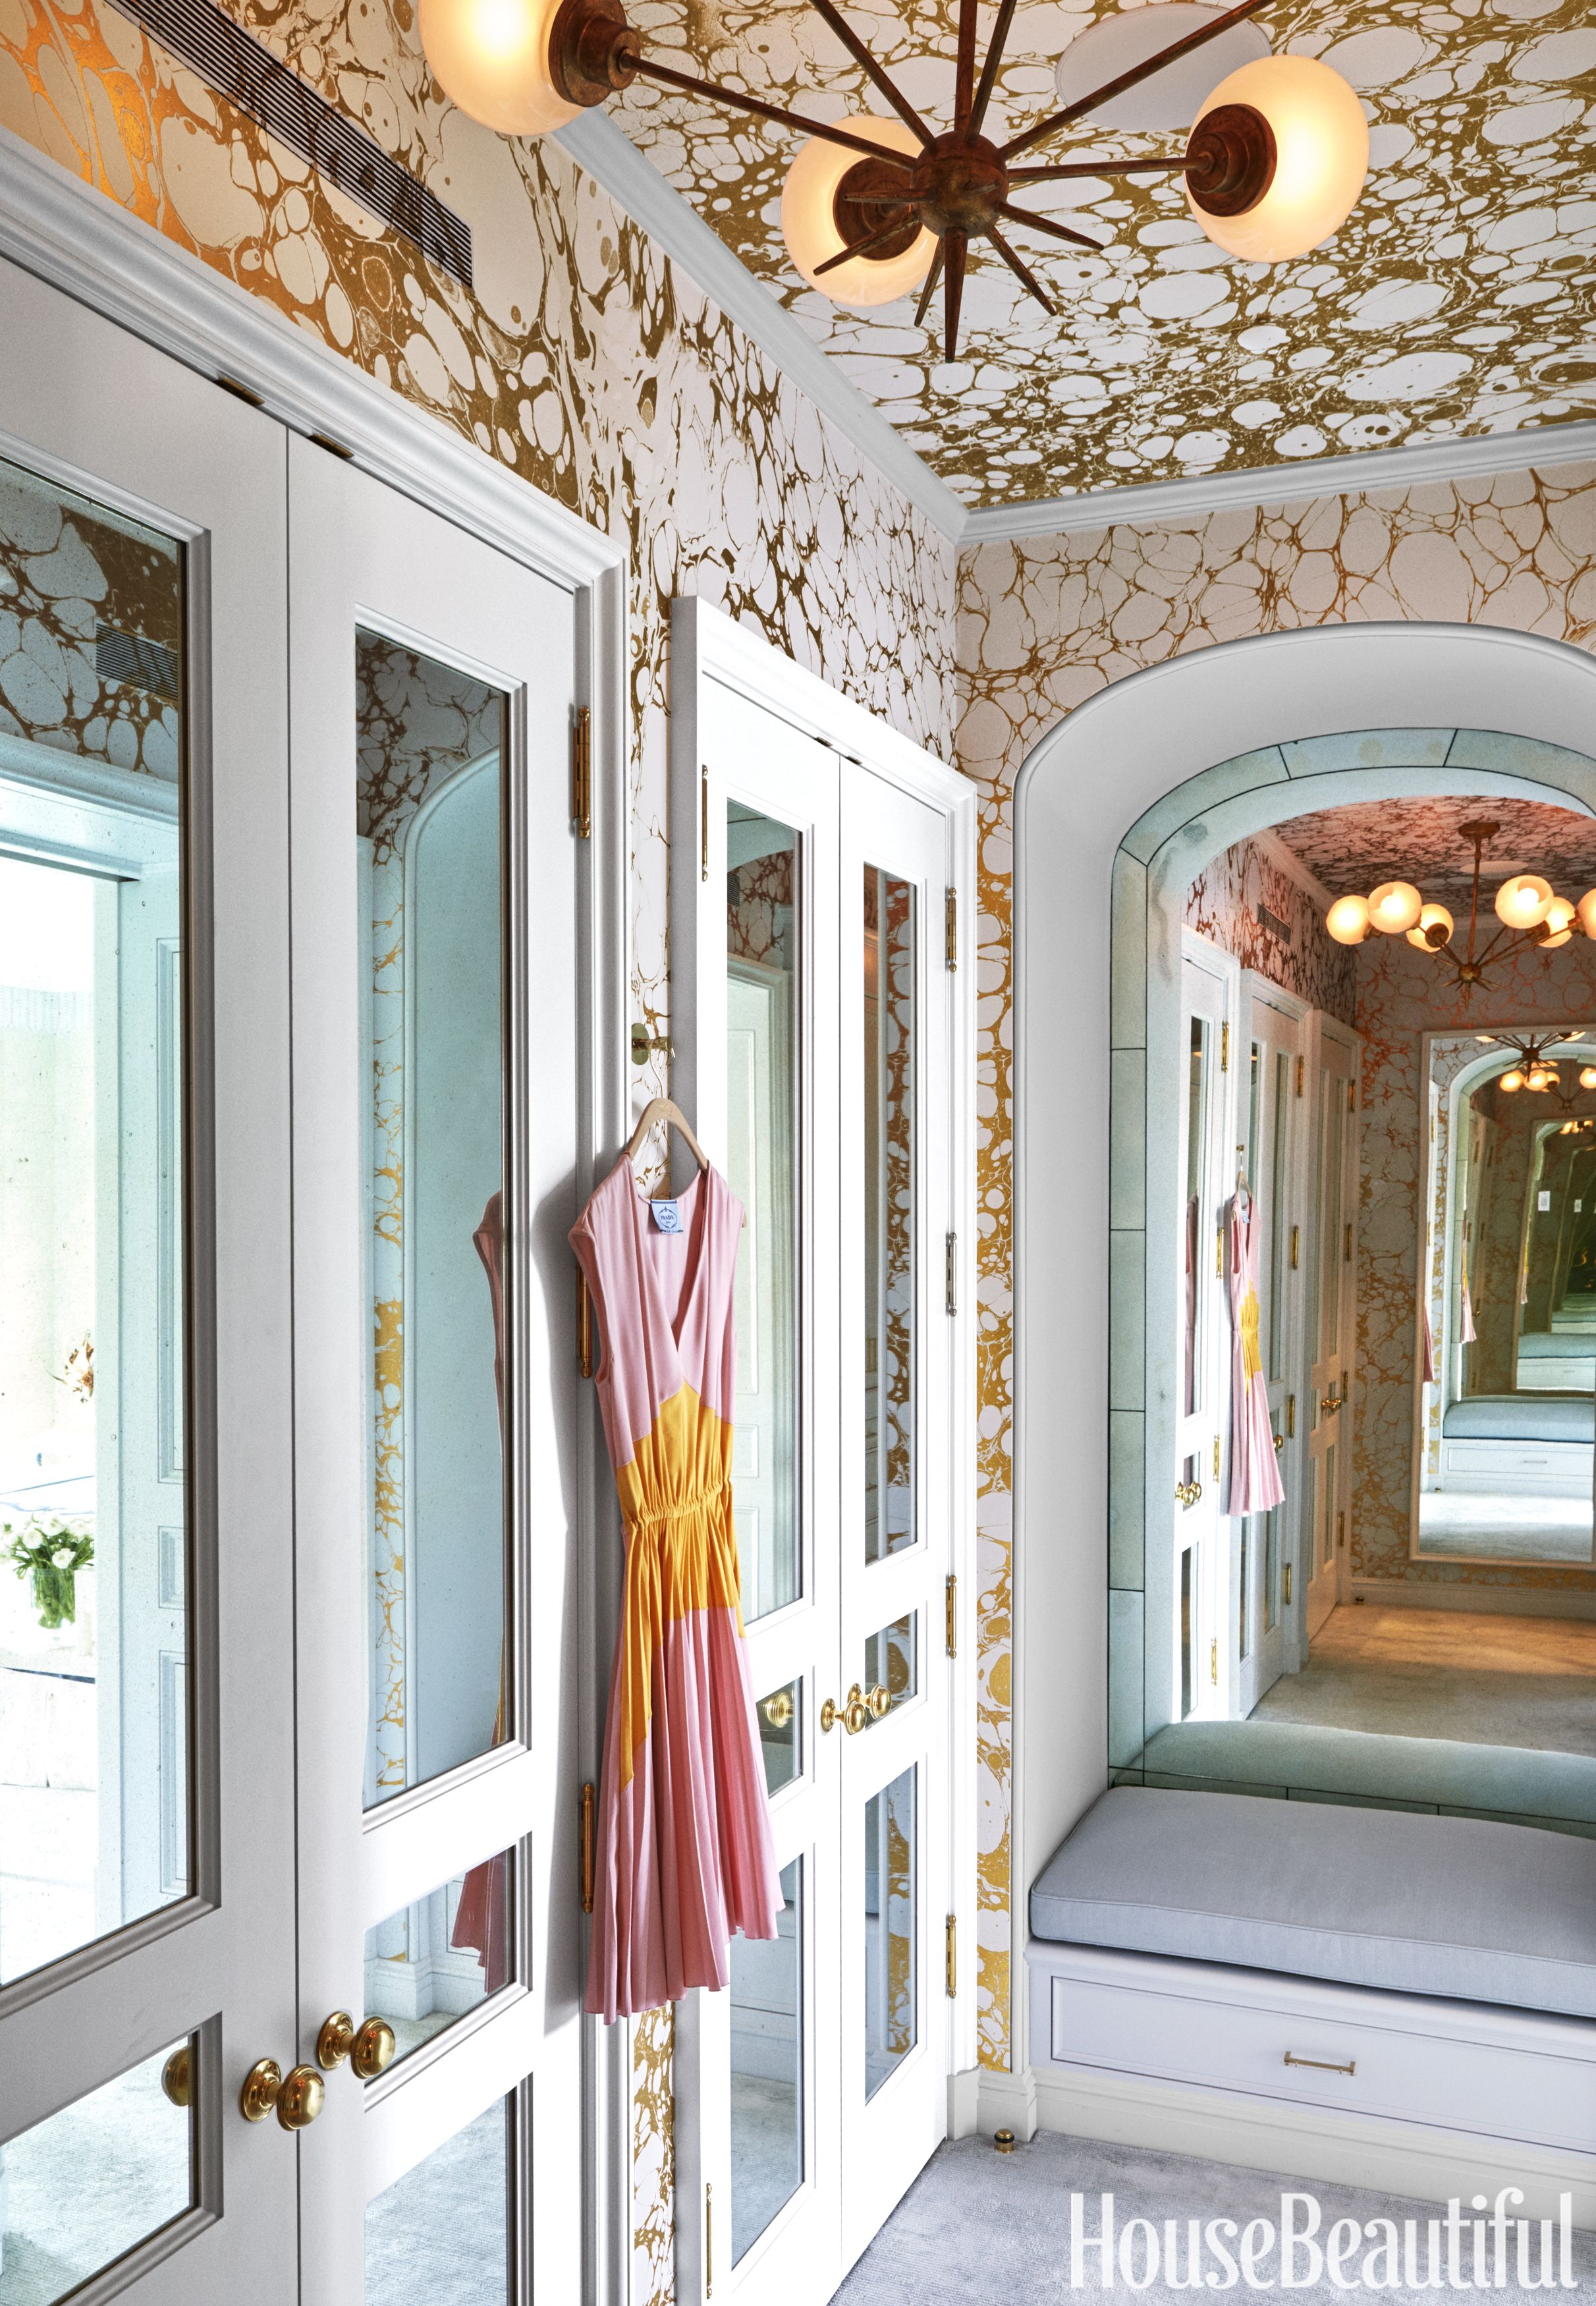 Closet - Celerie Kemble - Calico Wallpaper Ceiling Mirrored Doors